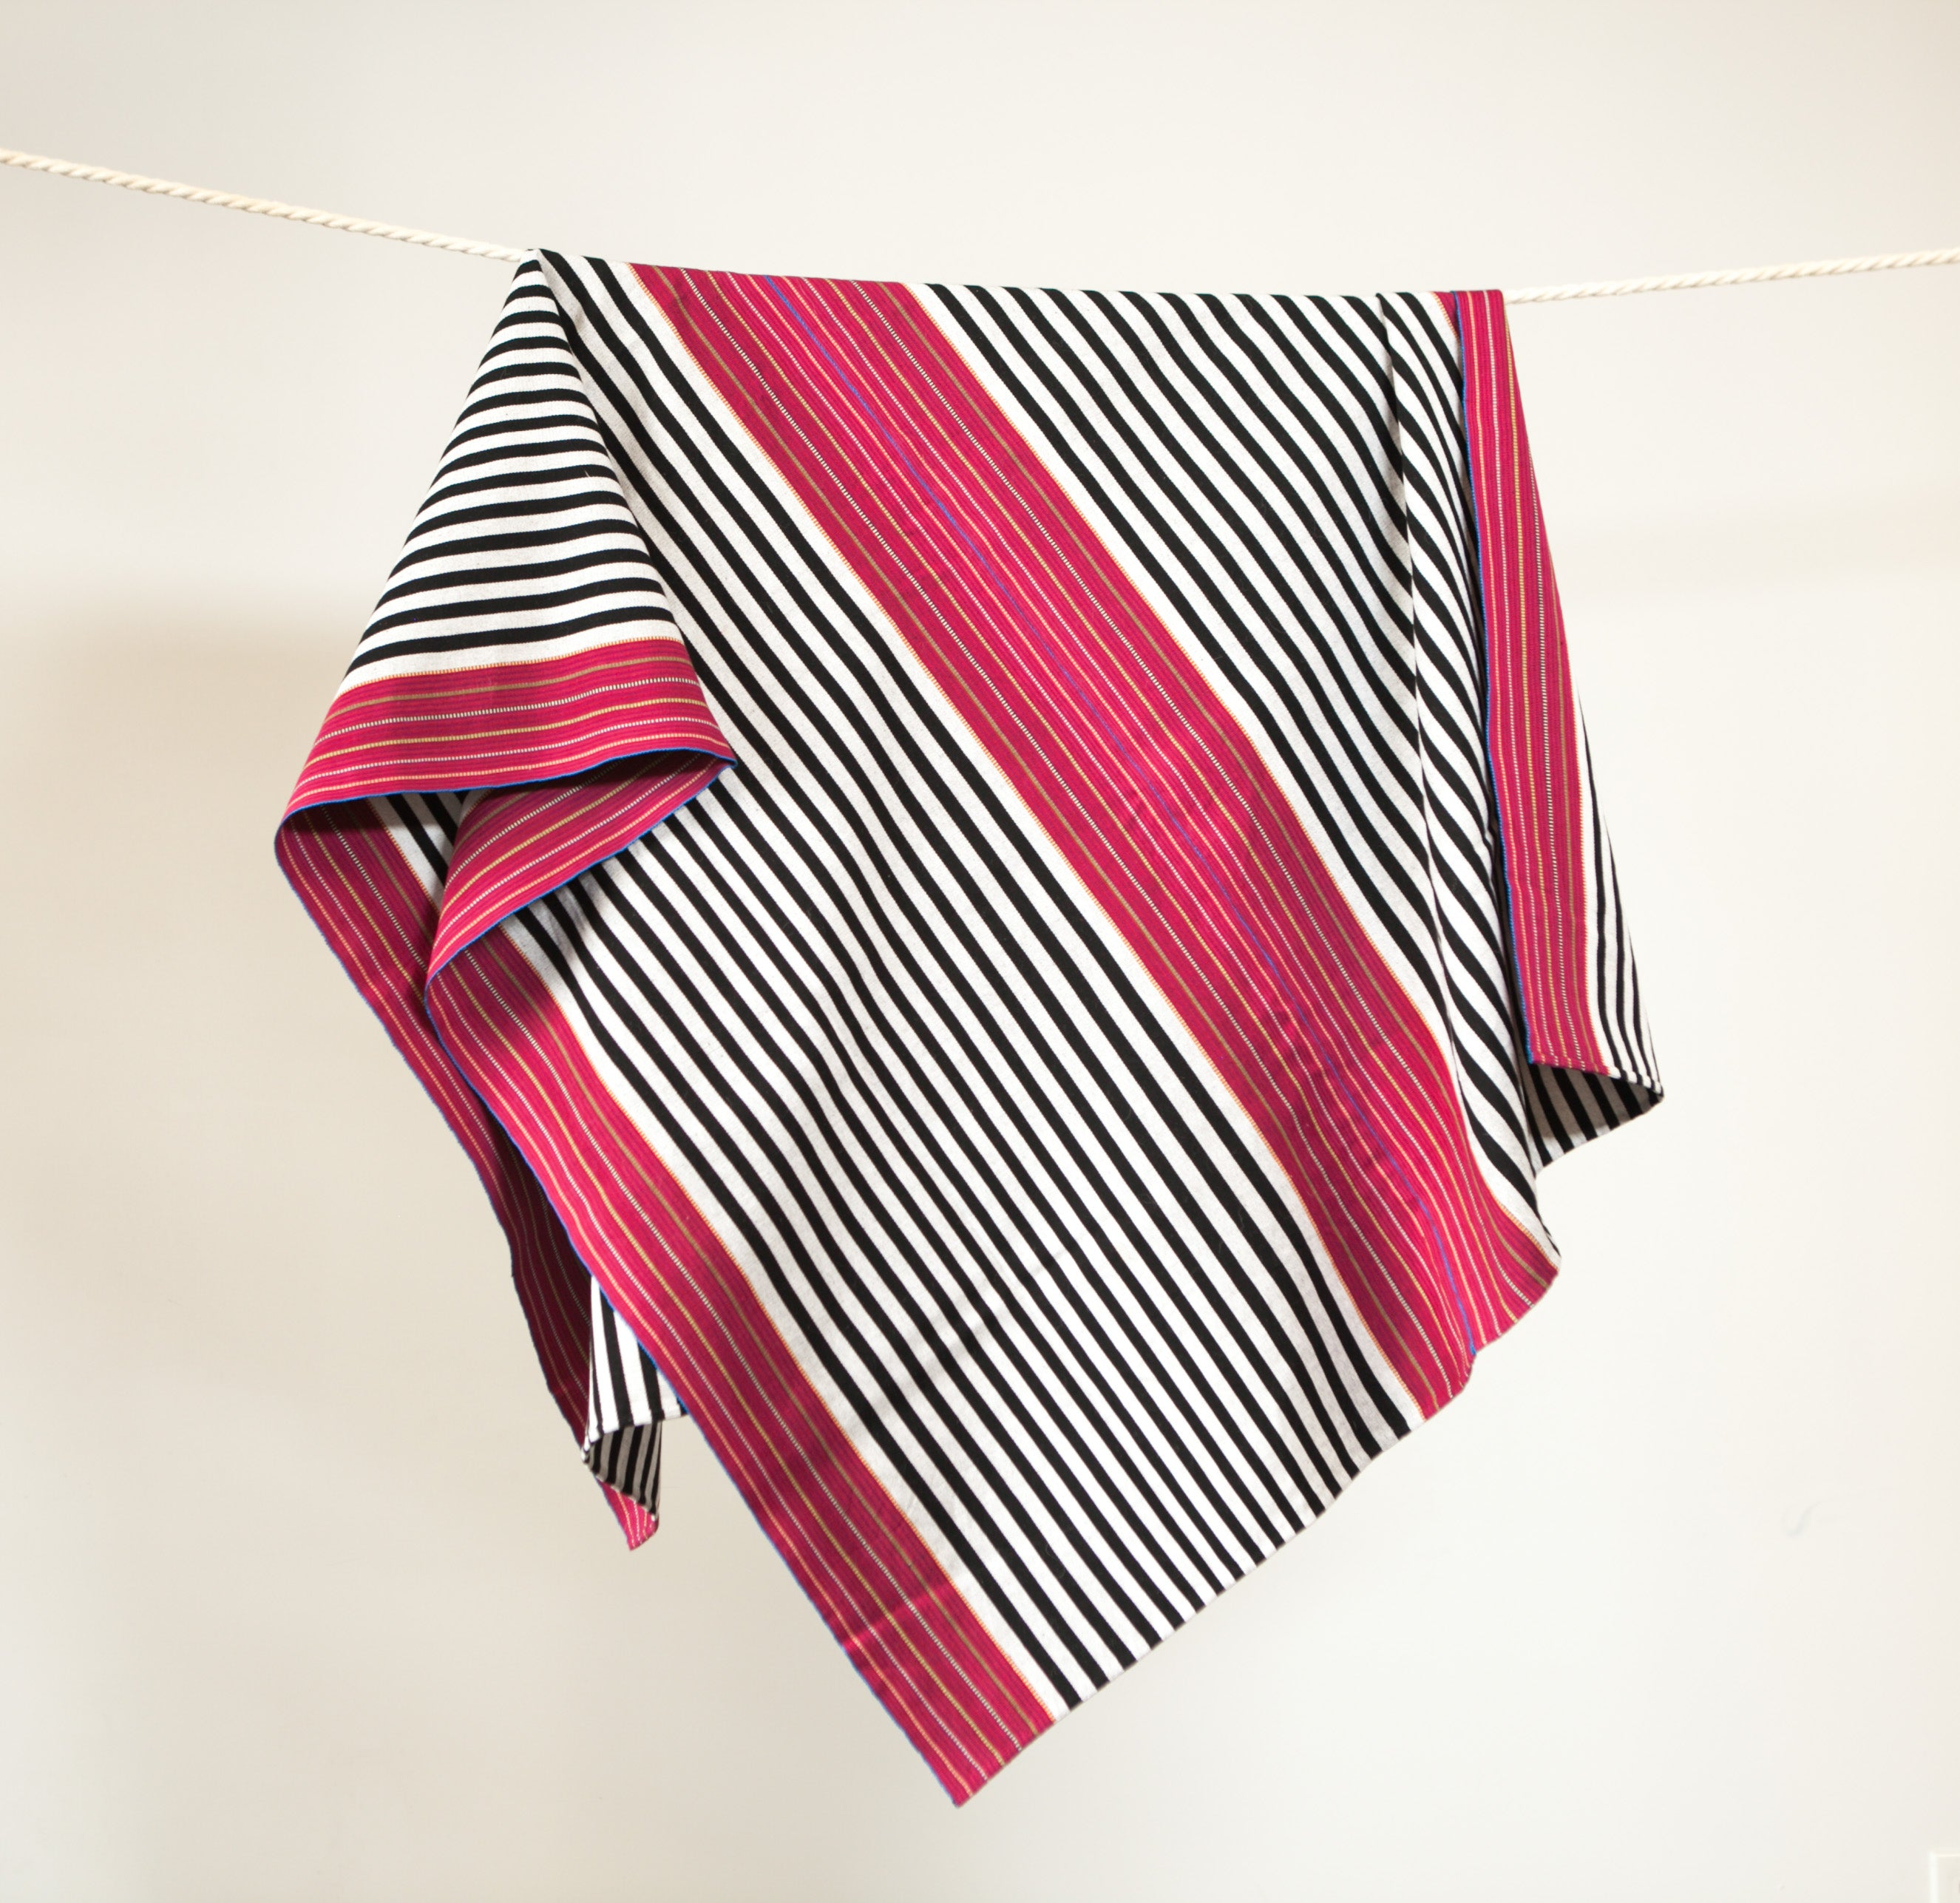 Handwoven cotton throw black and white B&W and red stripes